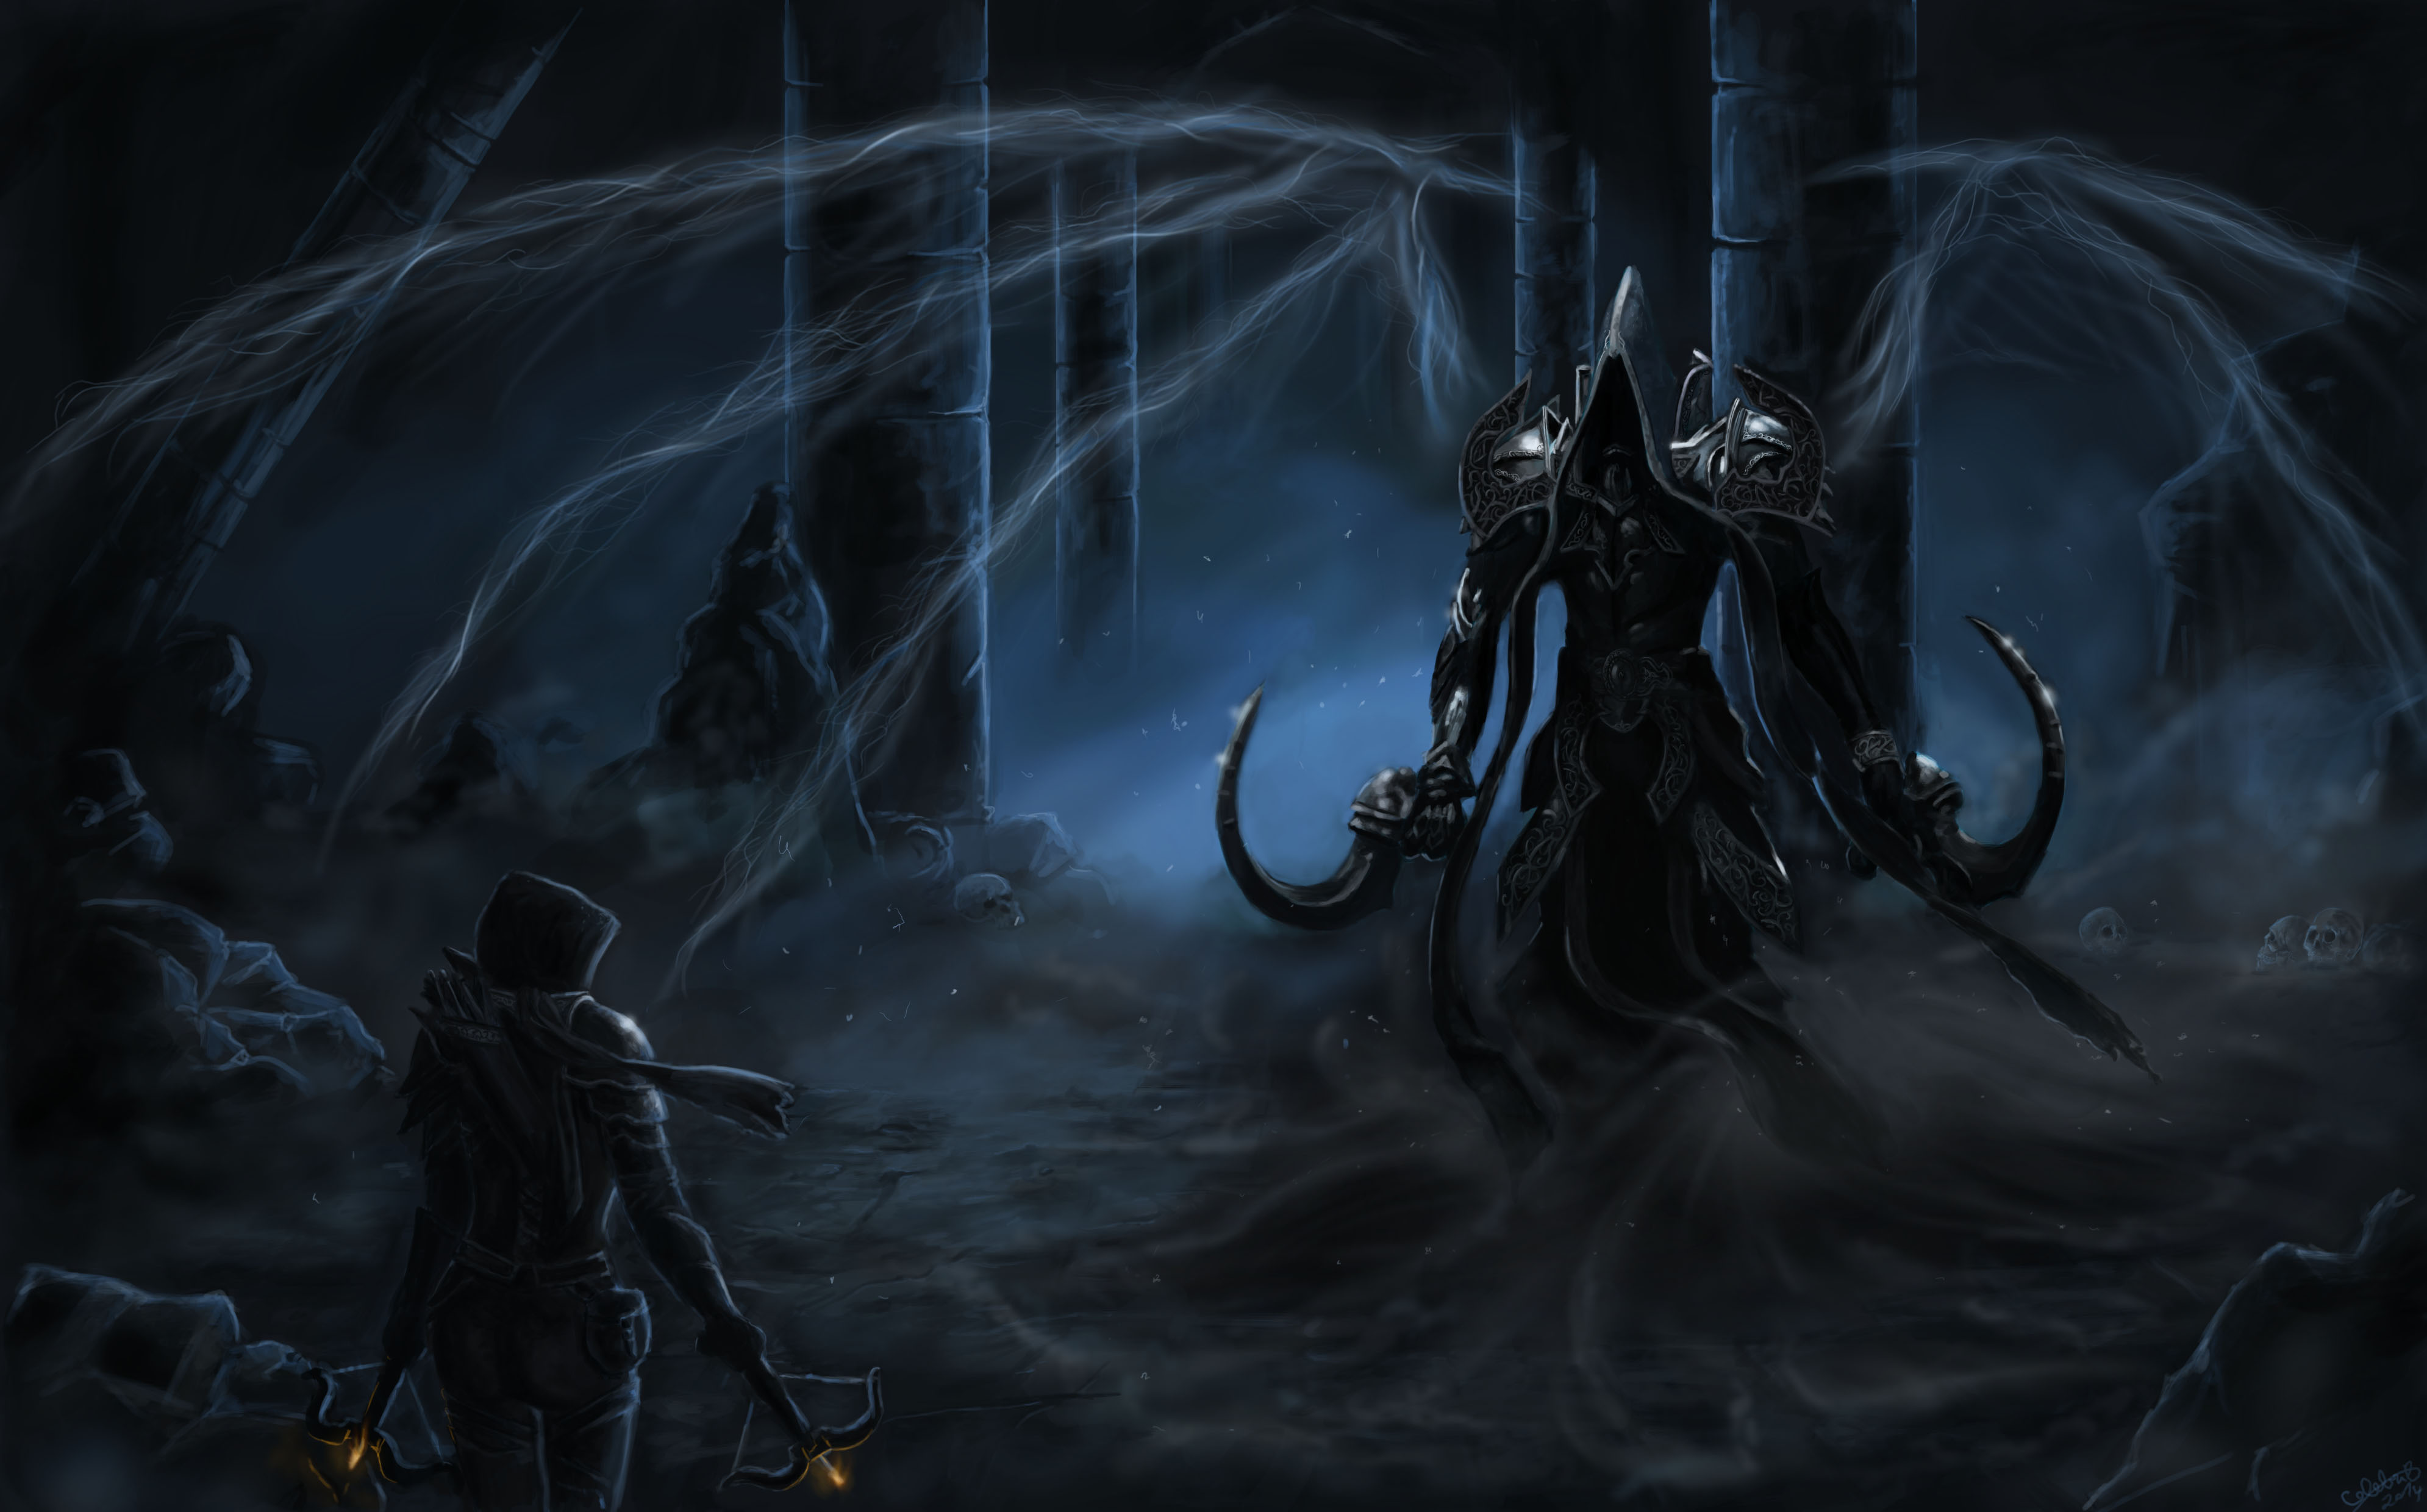 Download Wallpaper From Game Diablo Iii Reaper Of Souls With Tags